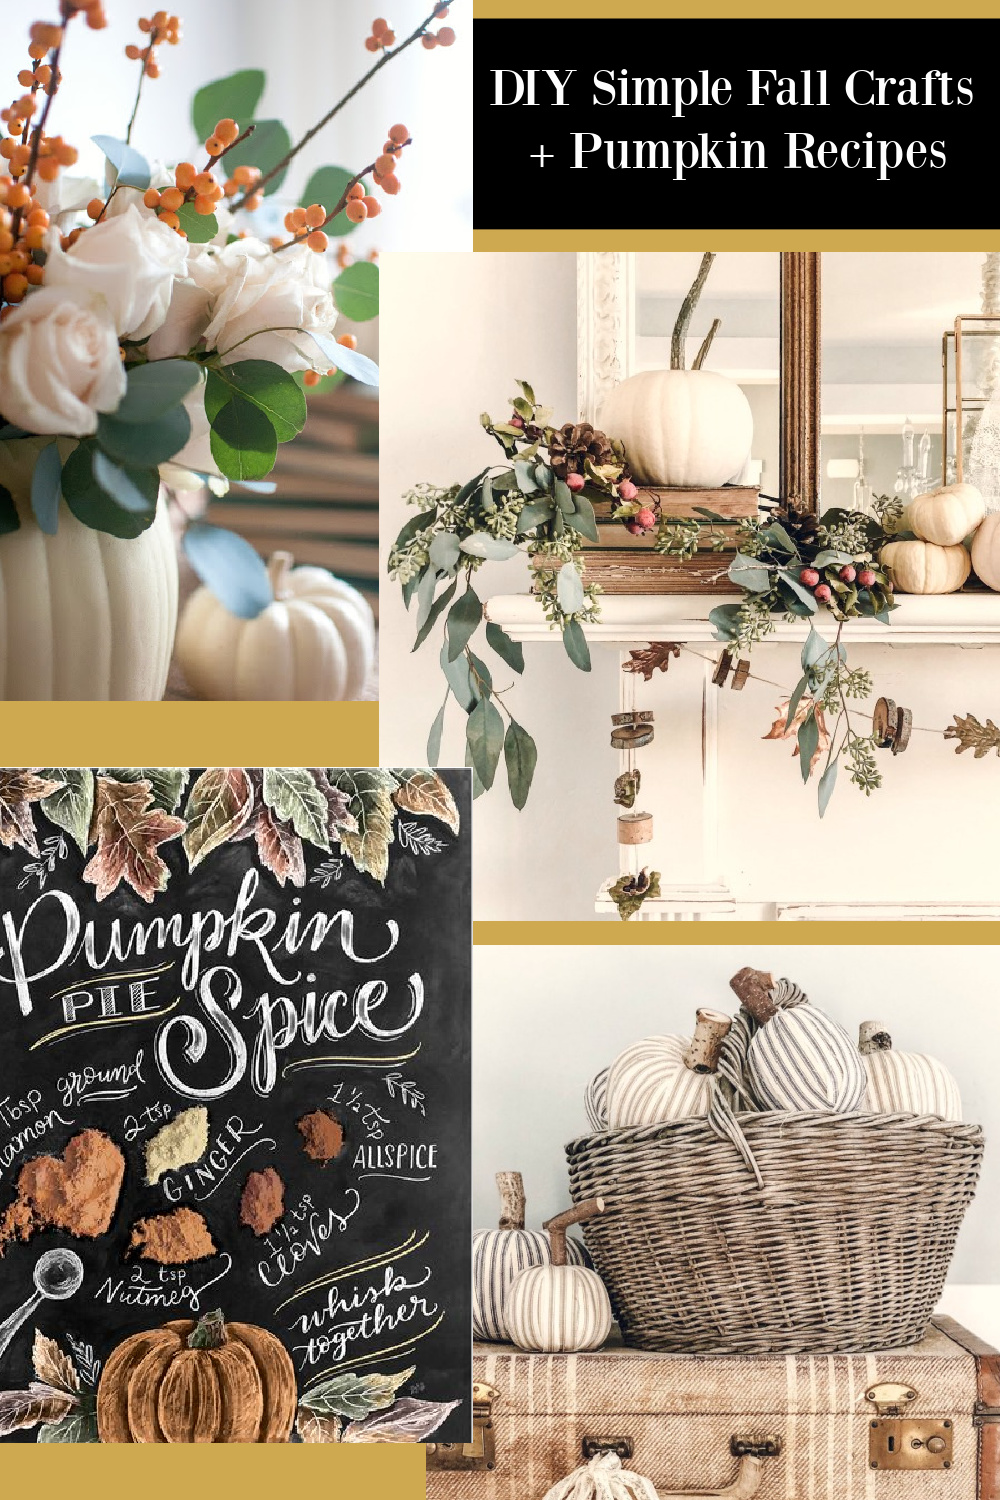 DIY Simple Fall Crafts + Pumpkin Recipes - Hello Lovely Studio. #fallcrafts #falldiy #falldecor #countrydecor #farmhousedecor #pumpkincrafts